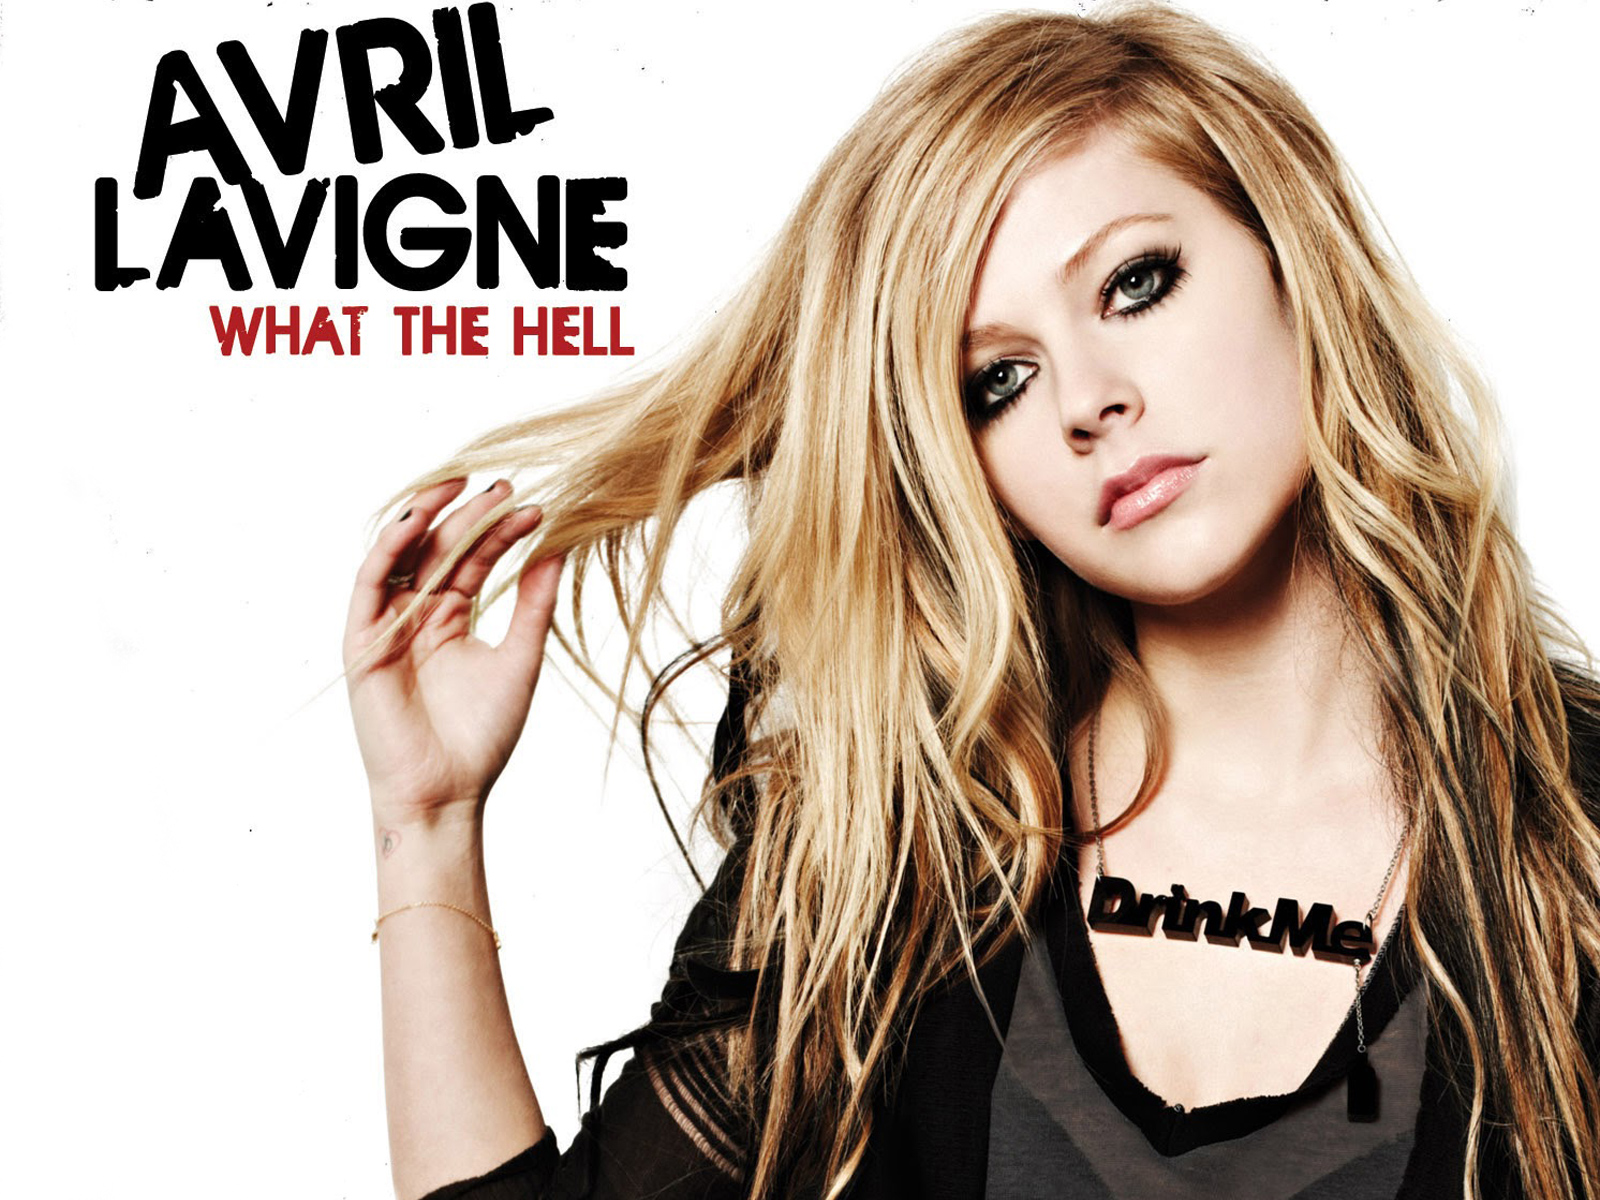 Avril Lavigne What The Hell wallpaper download